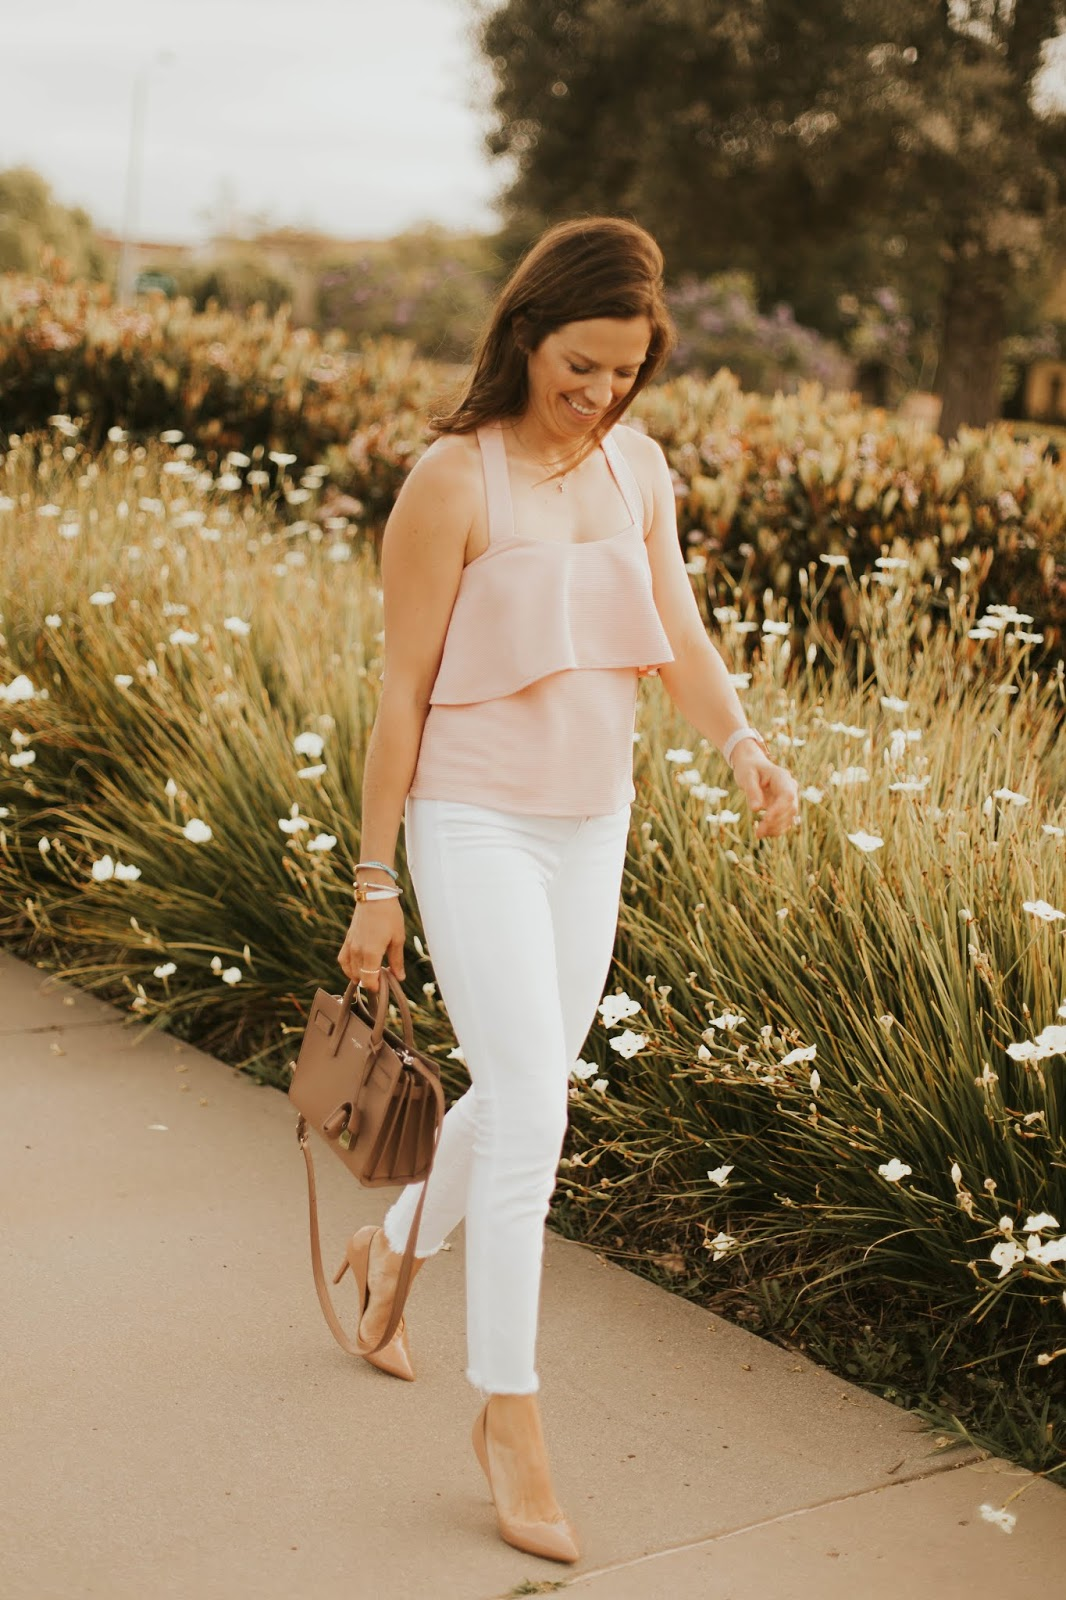 blush tiered top outfit